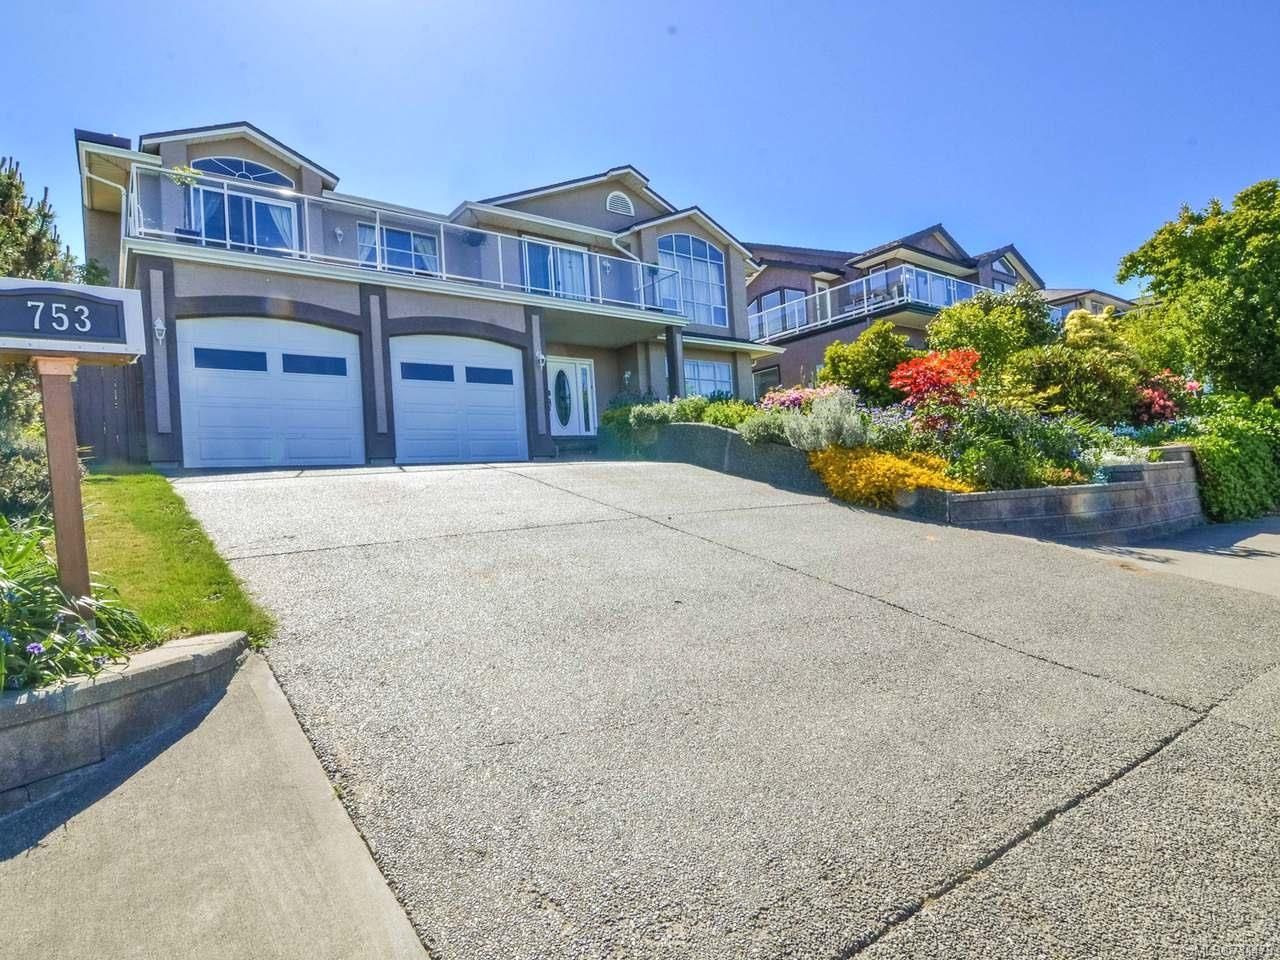 Photo 64: Photos: 753 Bowen Dr in CAMPBELL RIVER: CR Willow Point House for sale (Campbell River)  : MLS®# 731479